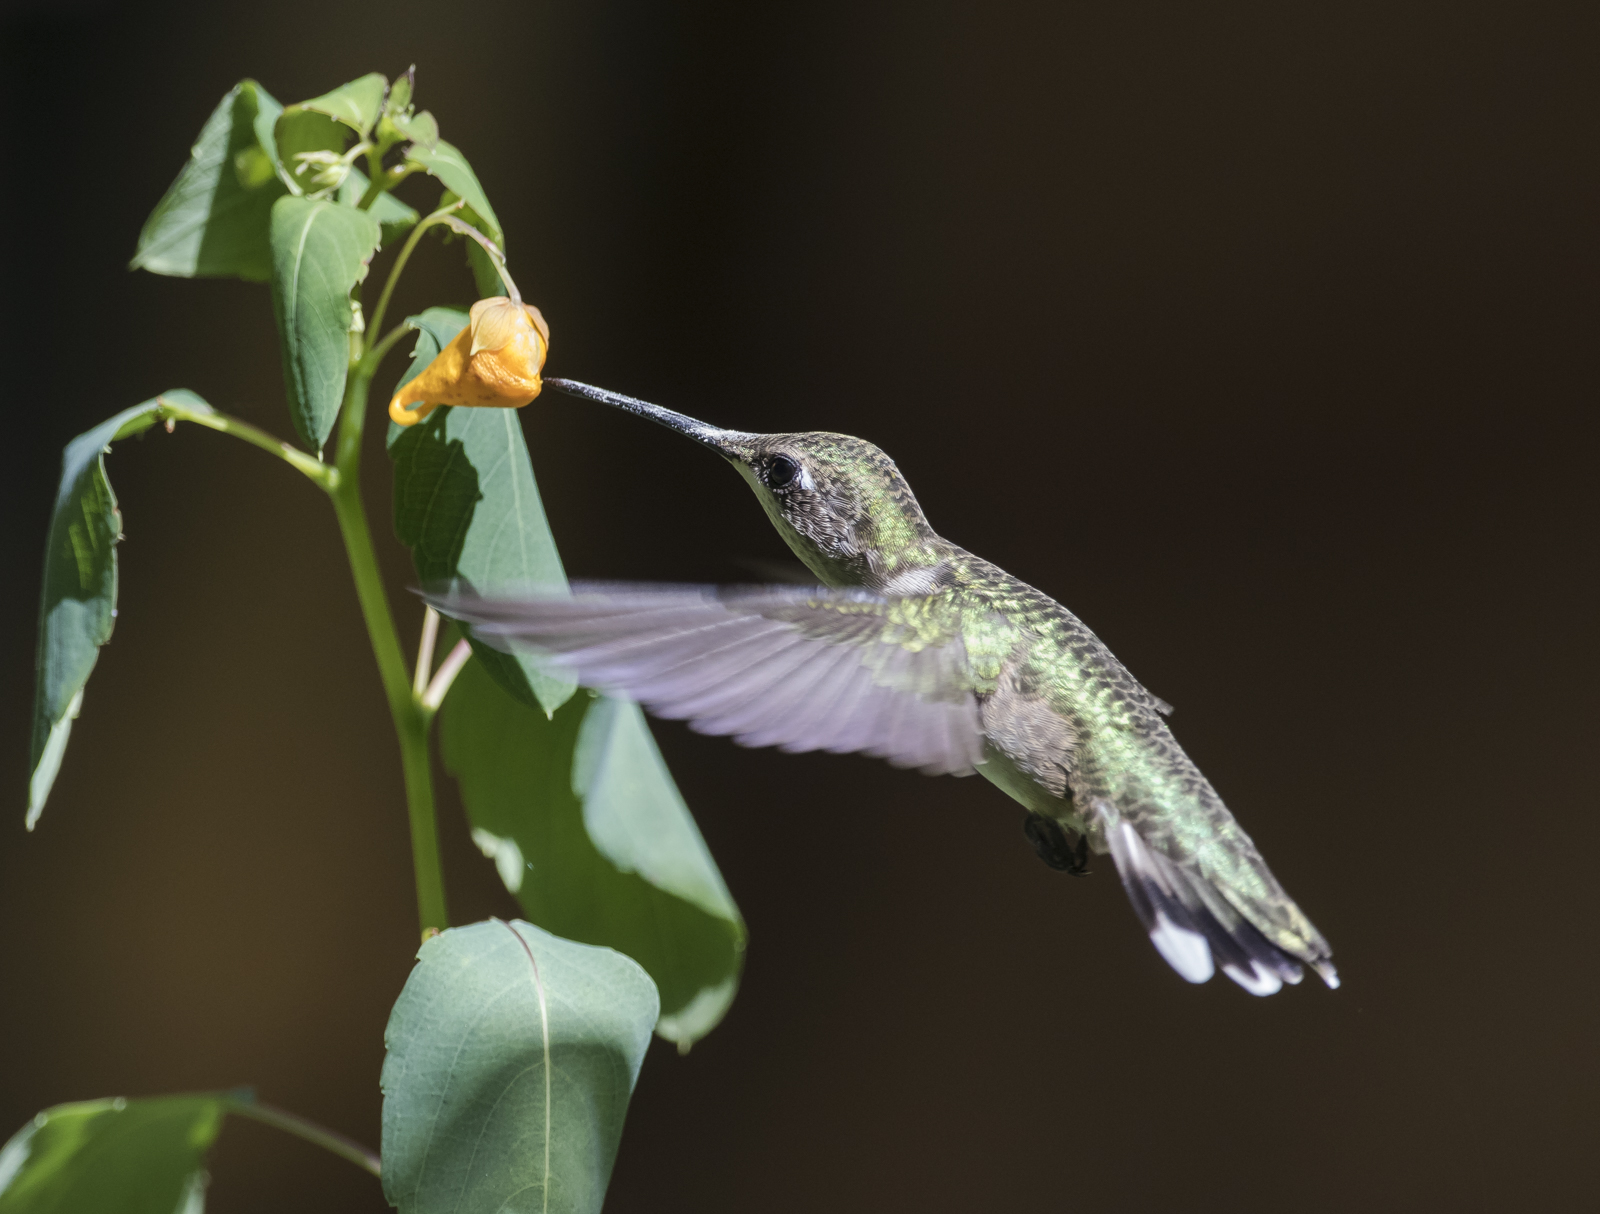 Ruby-throated hummingbird at jewelweed 2